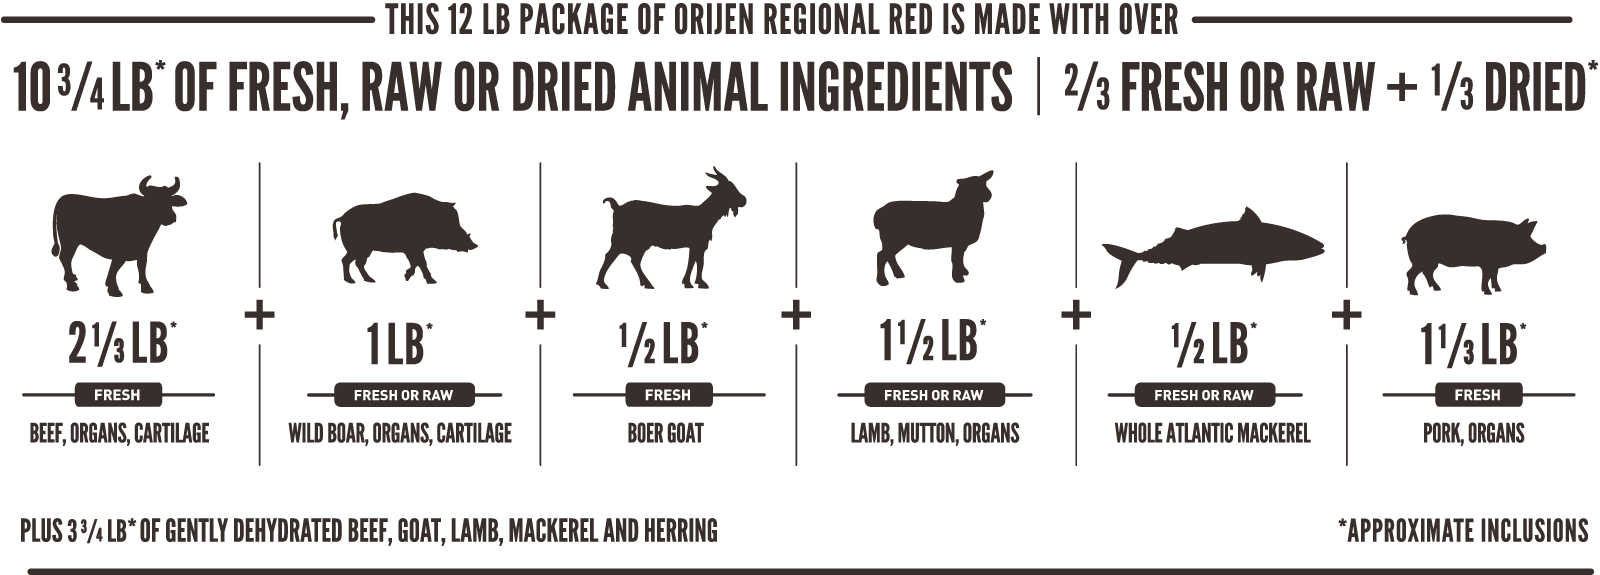 ORIJEN Regional Red Meatmath Formula and Cat Food Ingredients